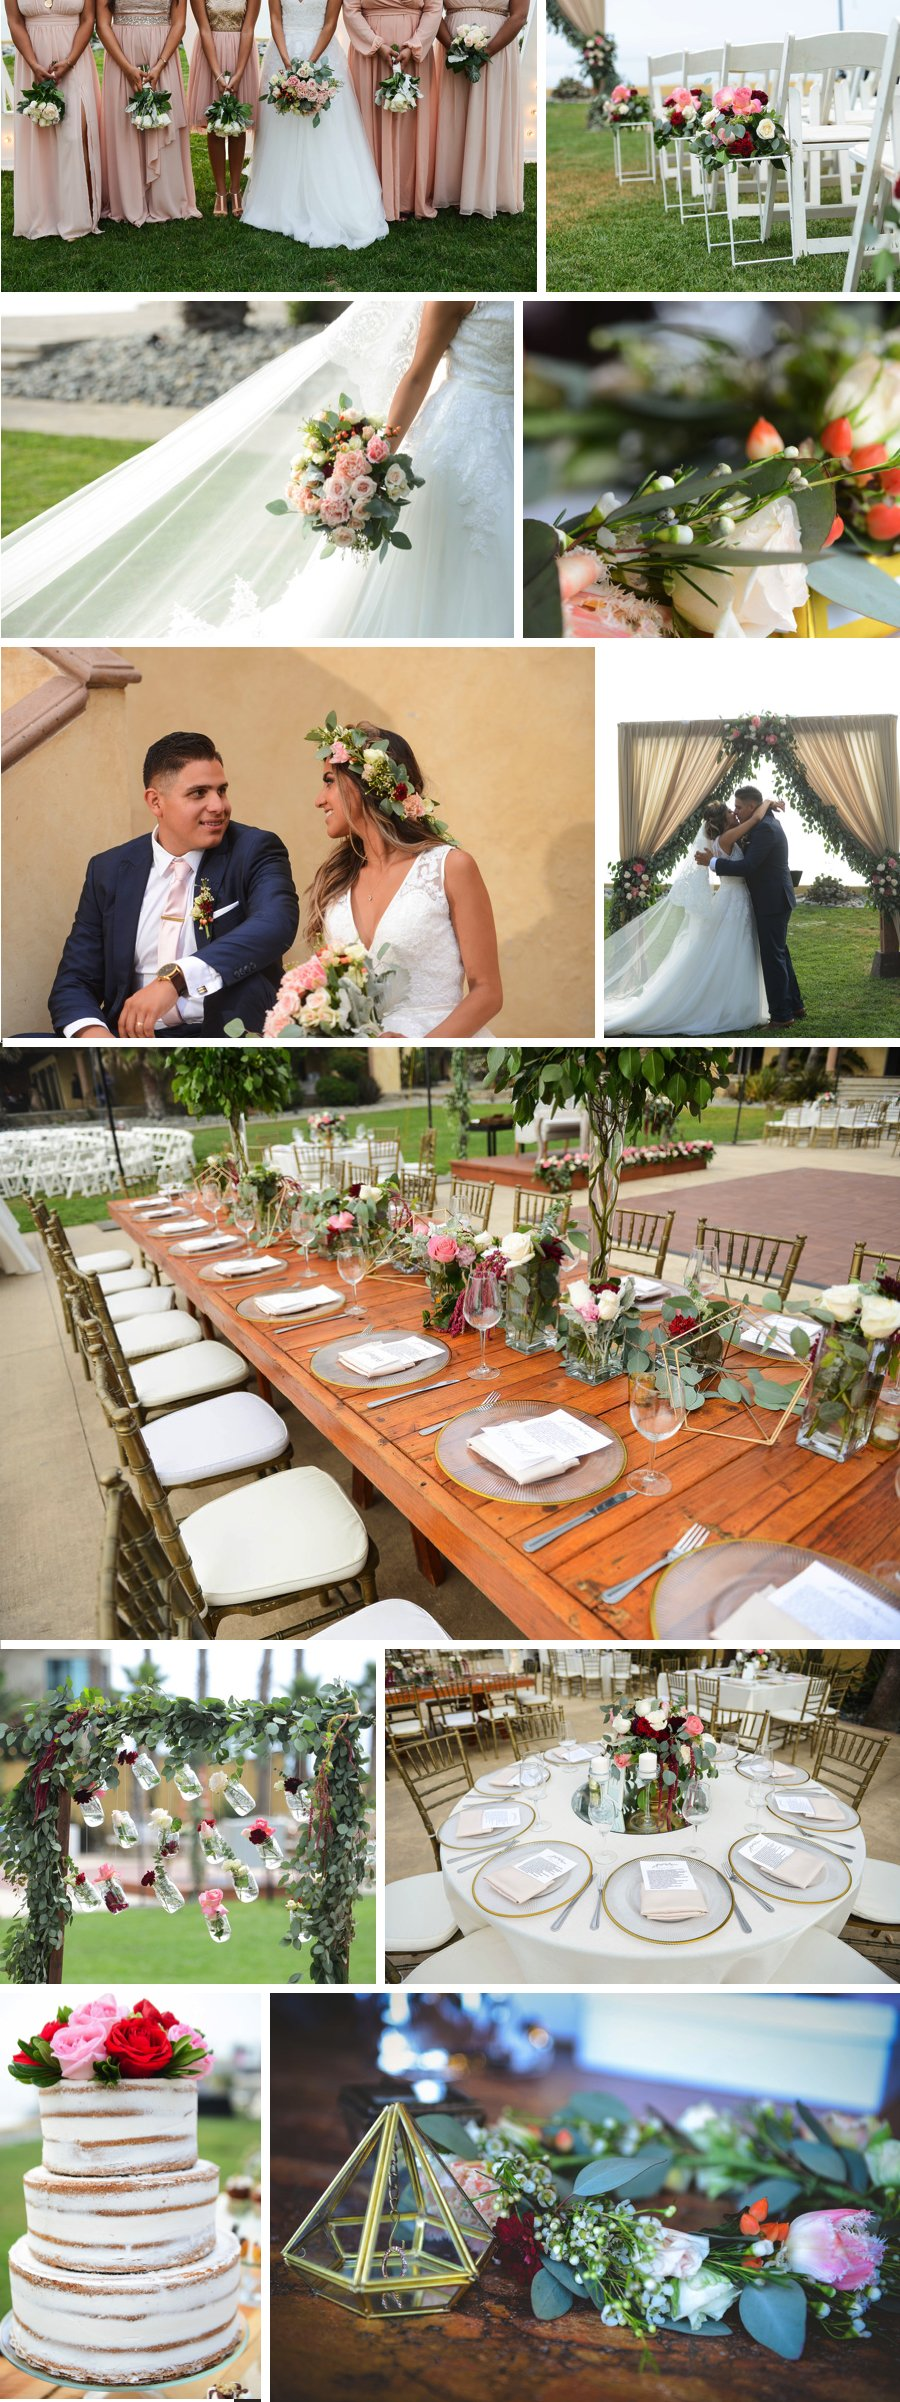 Real wedding: Roses in Rosarito Mexico